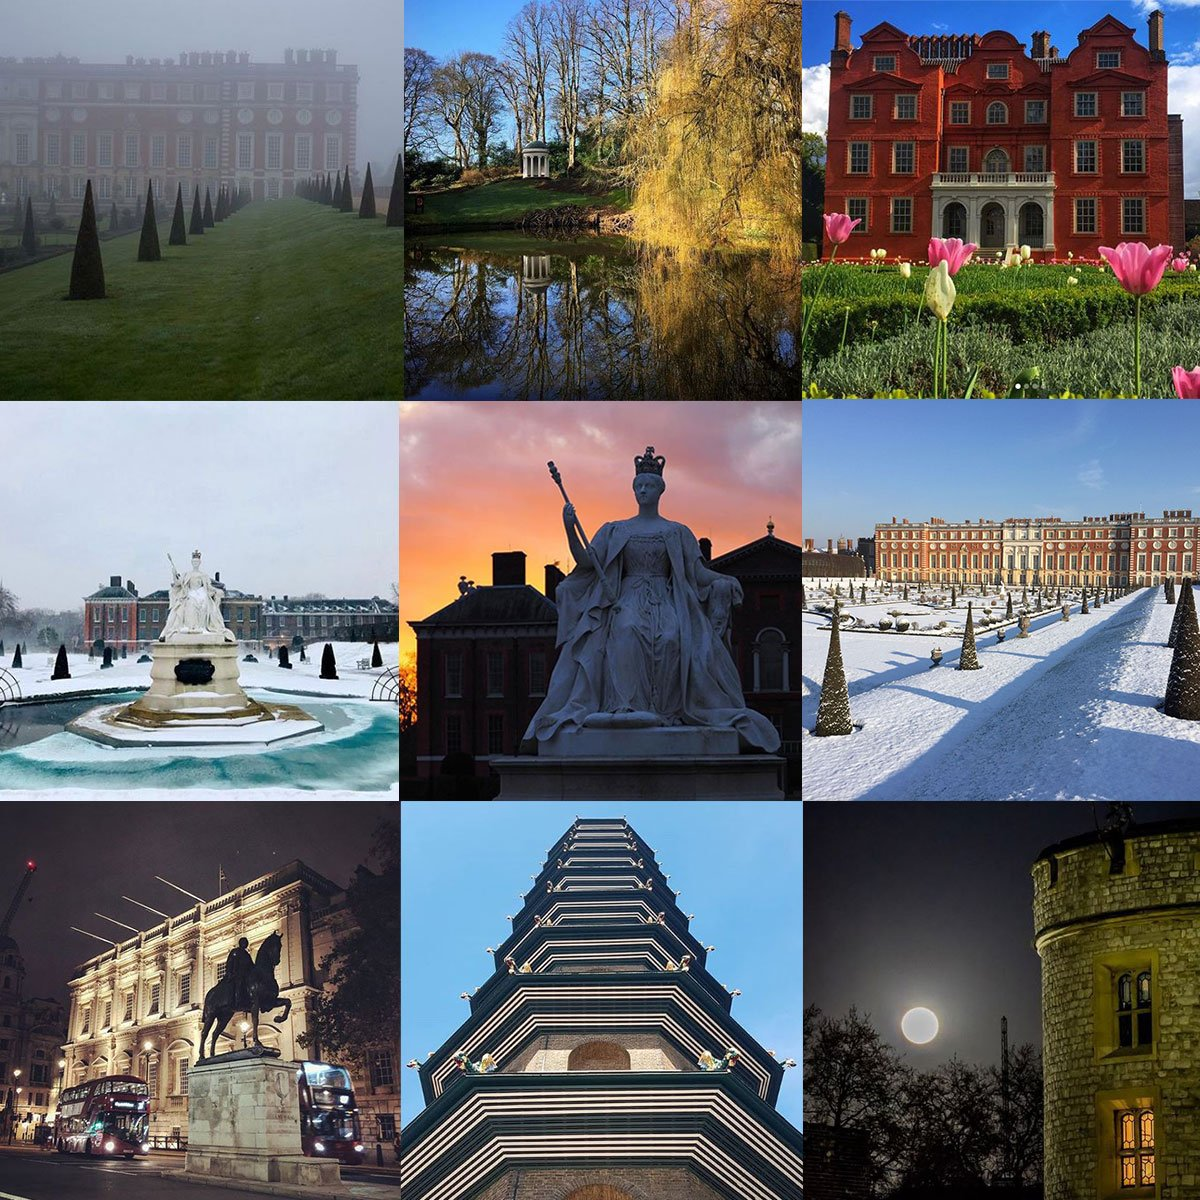 At the end of this month, we'll announce our winning PHOTO OF THE YEAR! If you've taken a picture of the palaces, now is the time to share it - theres still time to be included in the shortlist 🏆 🏆 🏆 #PalacePhoto